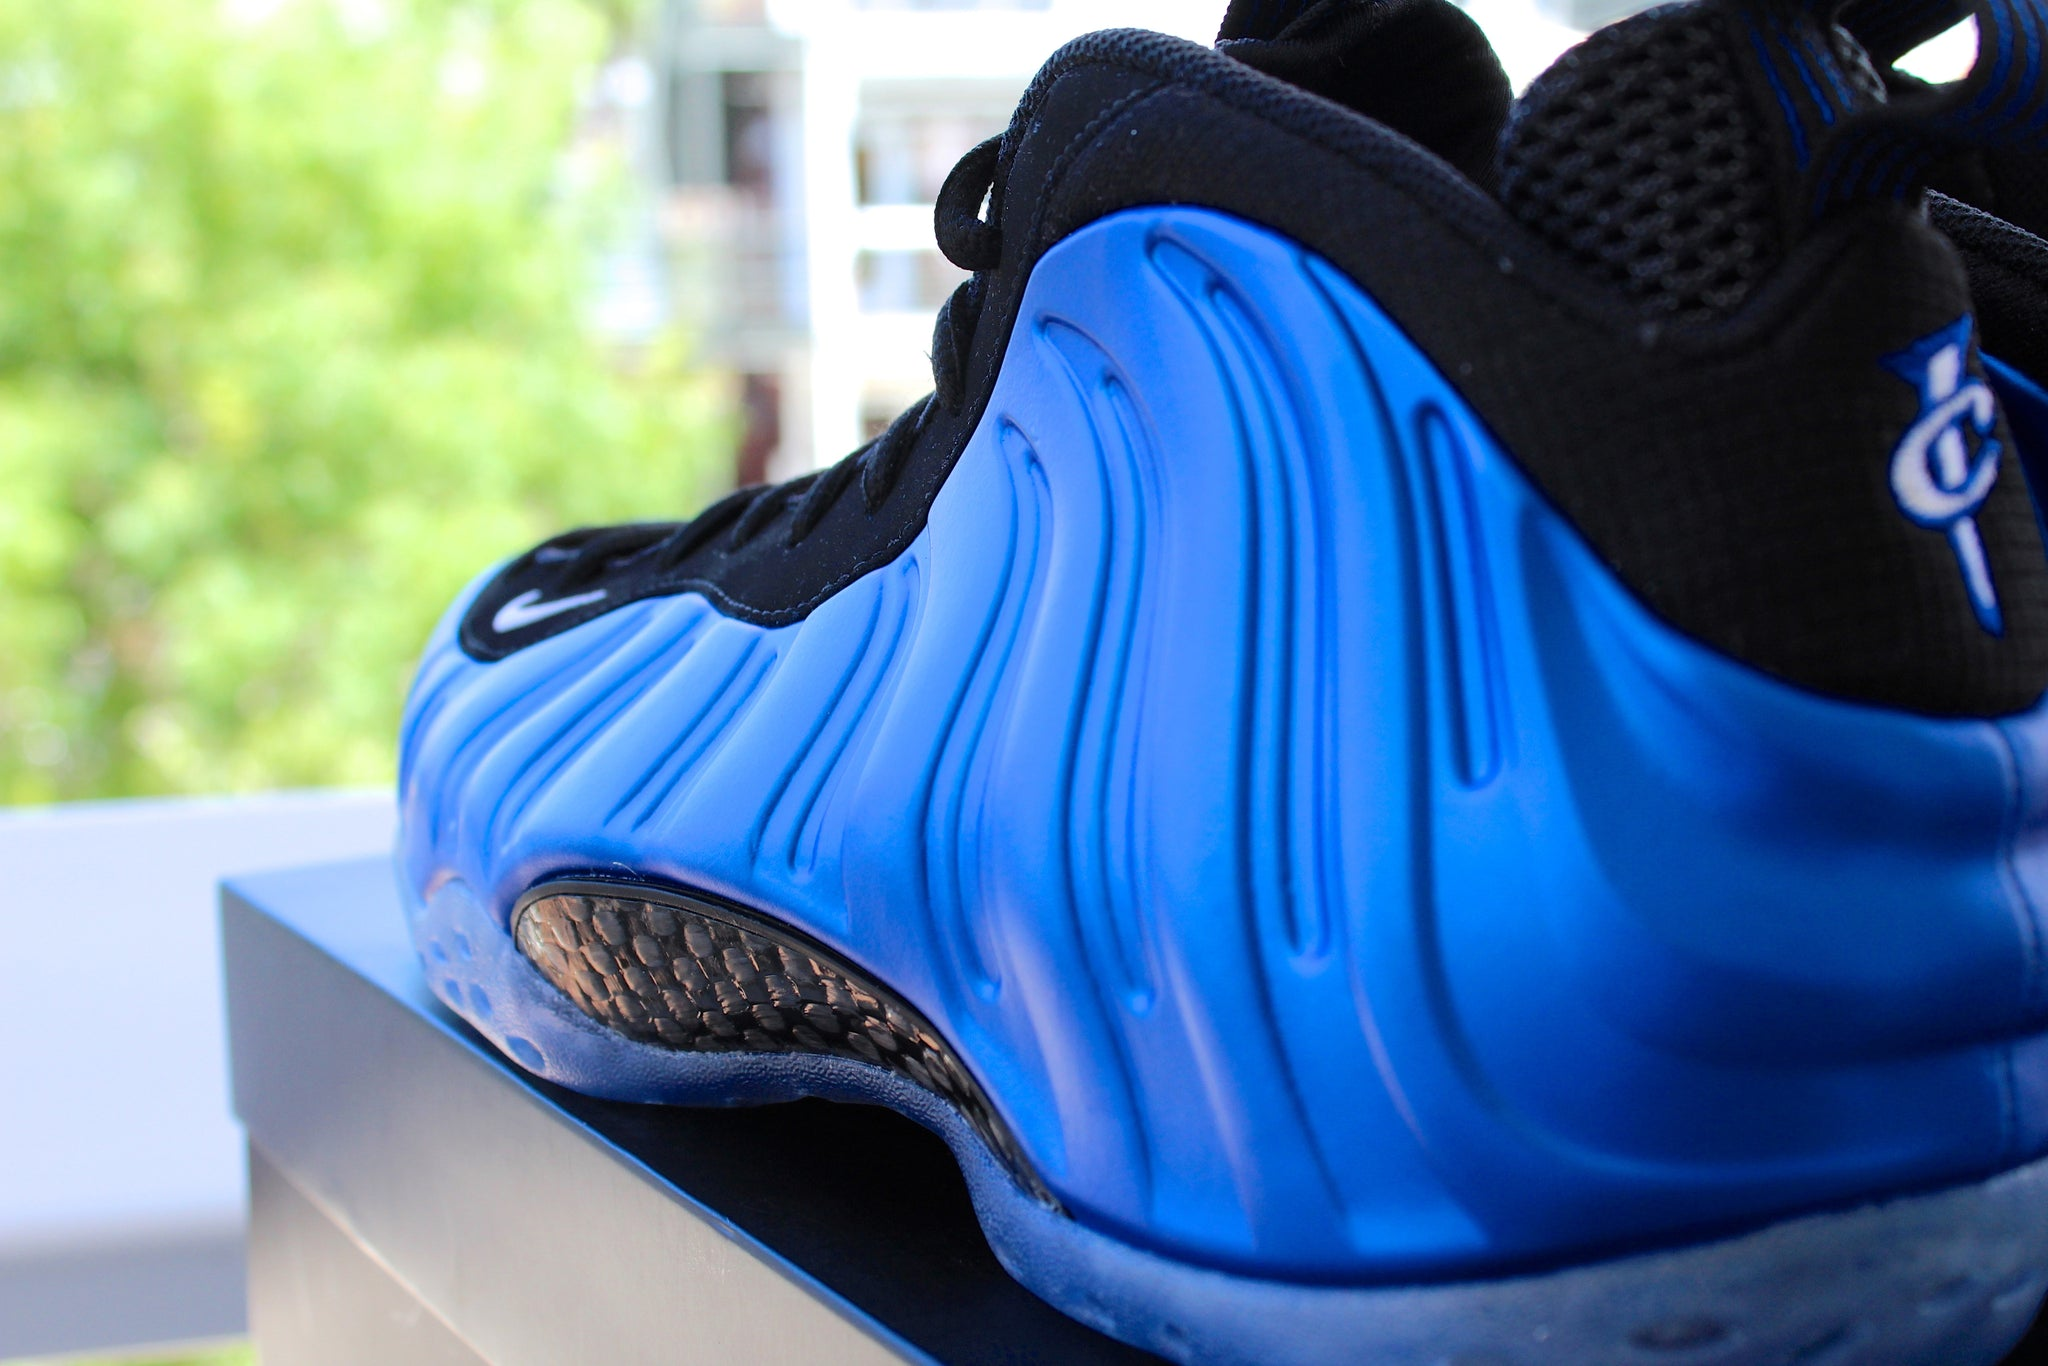 Nike Foamposite OG Royal Blue